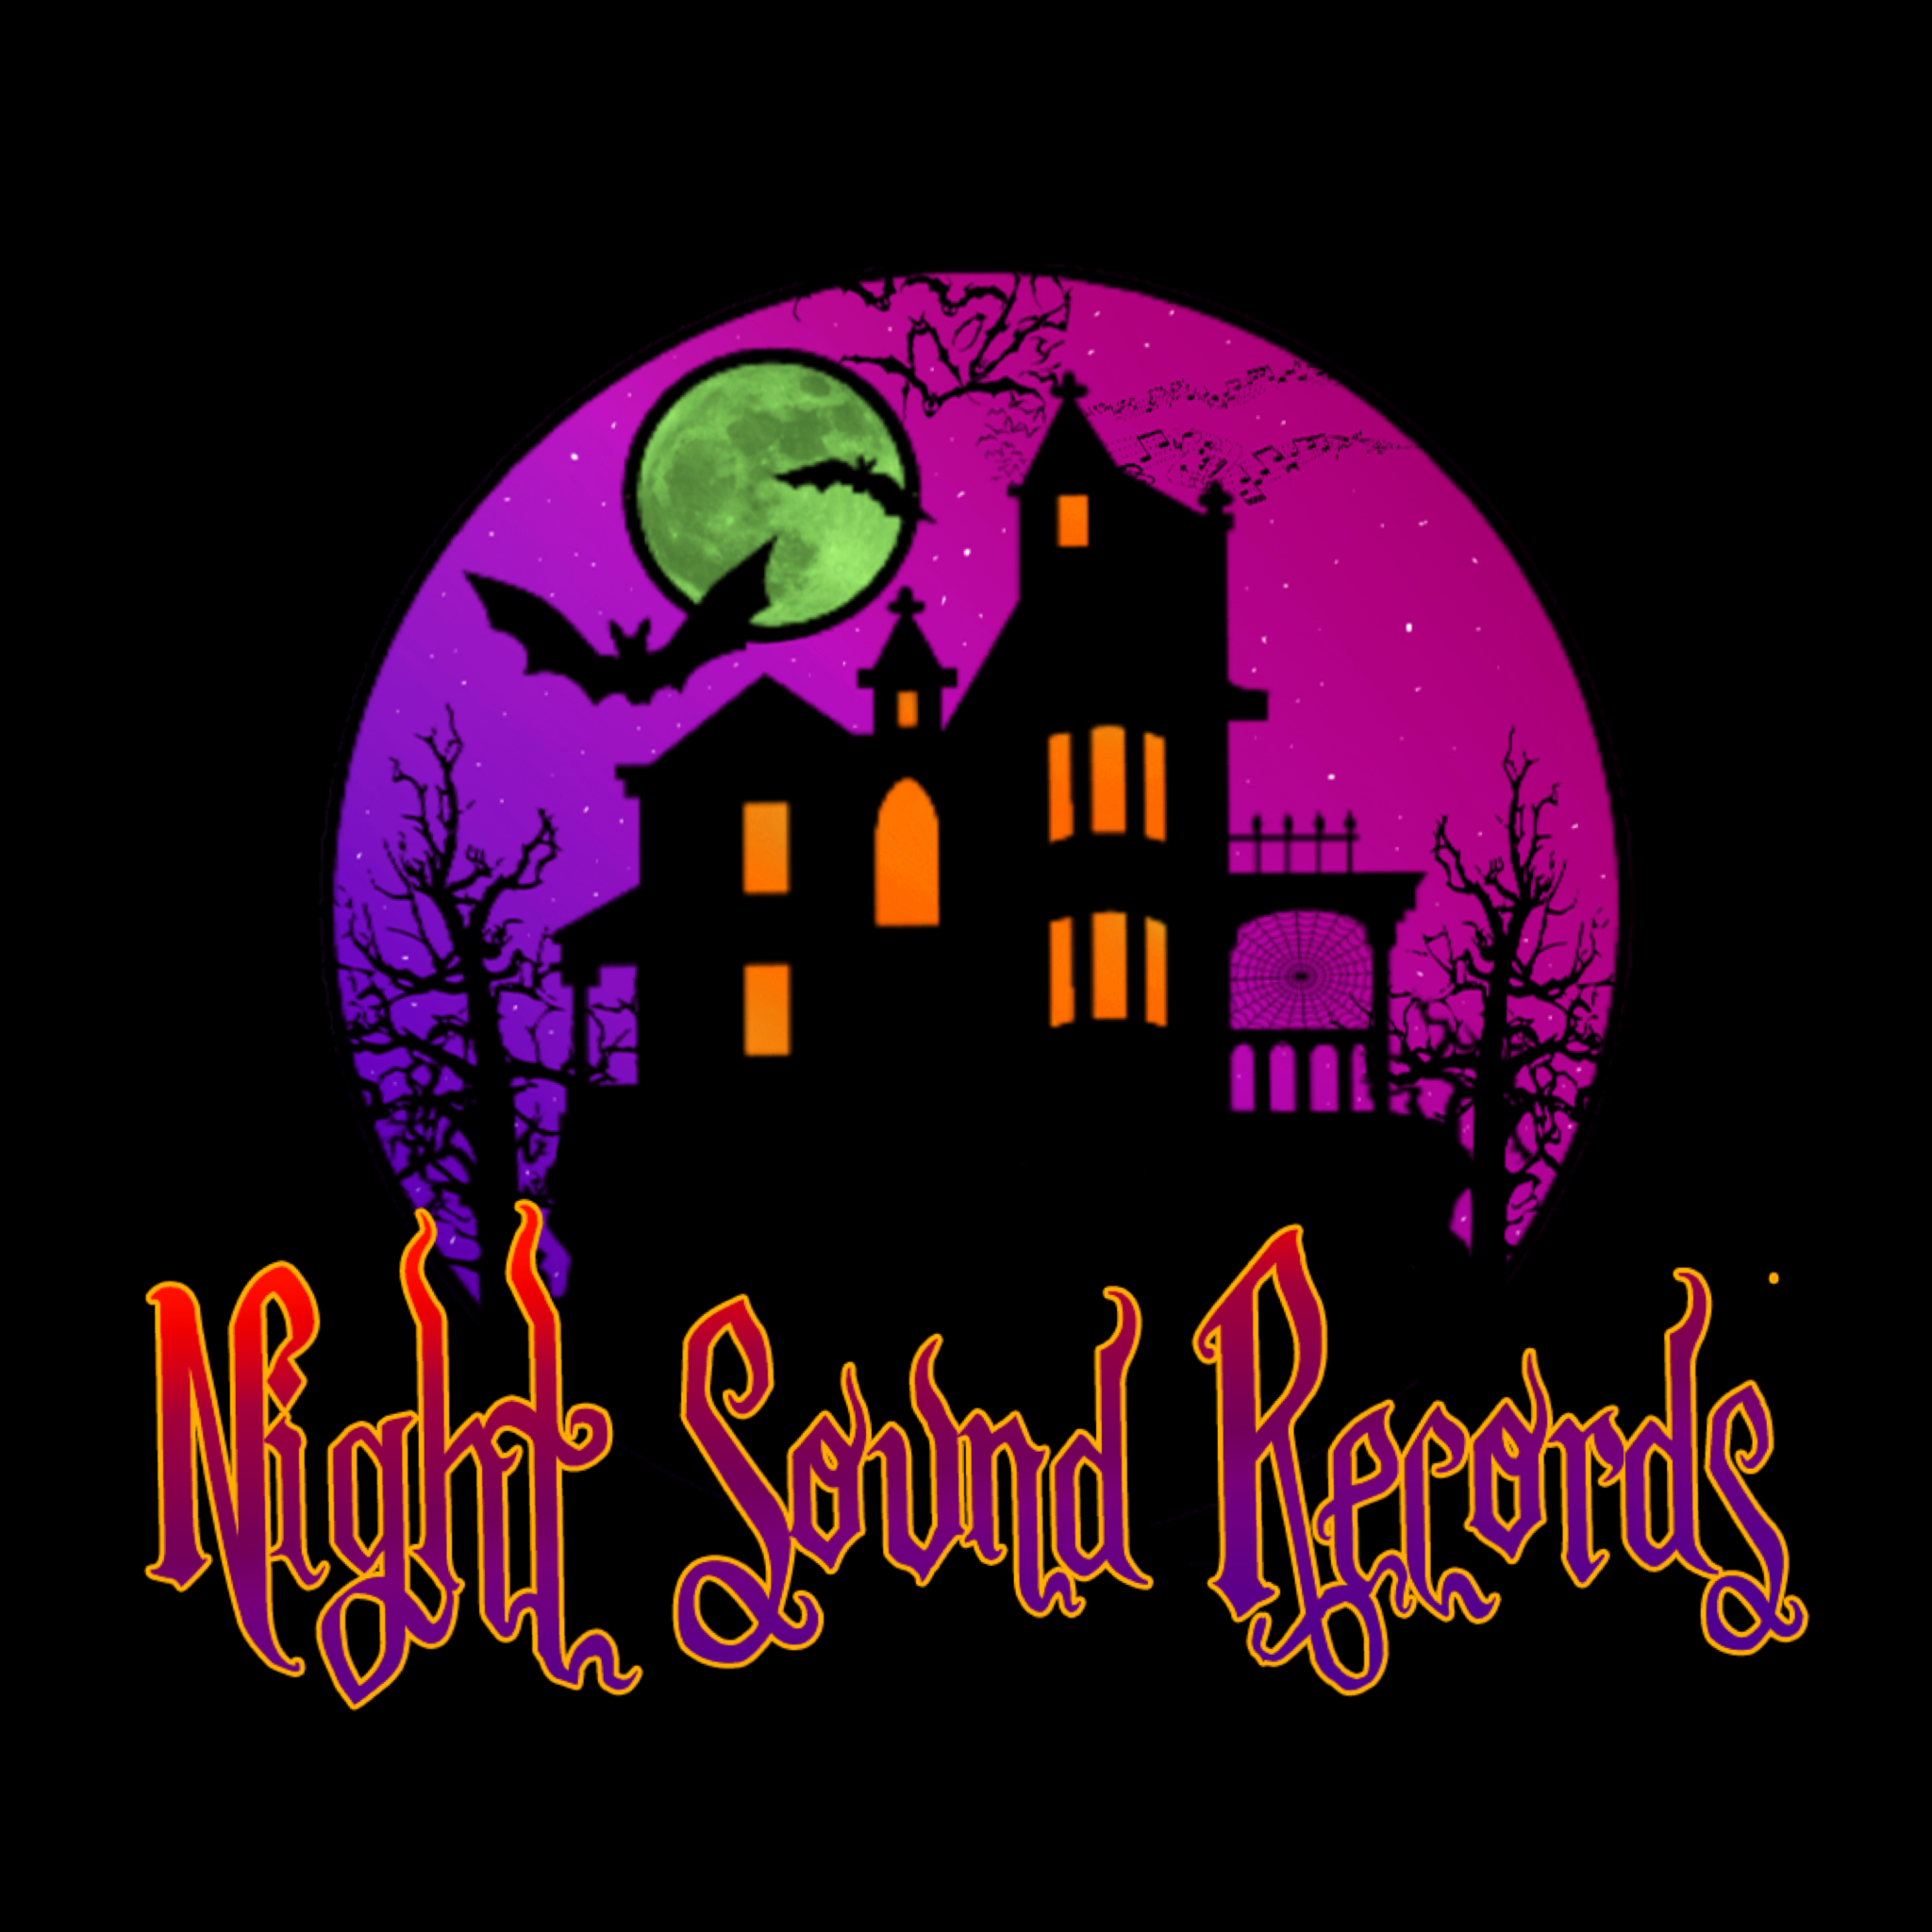 Night Sound Records Merch